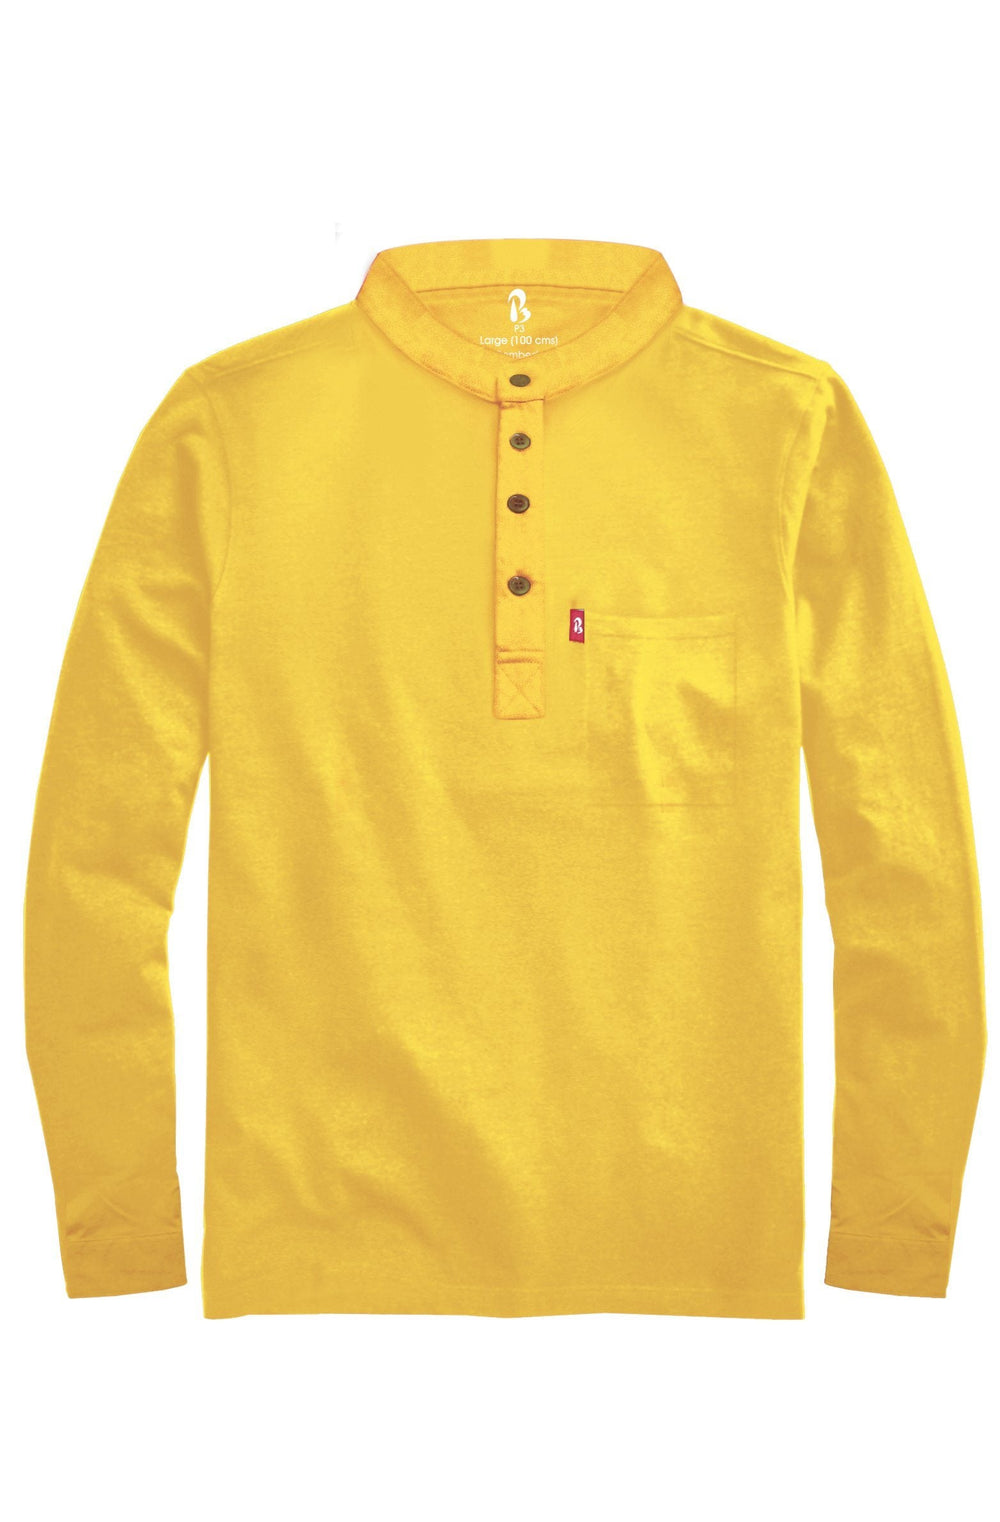 "Cuffed Mandarin Henley (MRP inclusive of all taxes) Mandarins P3 Small/ 90 cms/ Ideal for shirt size 38"" Sweet yellow"